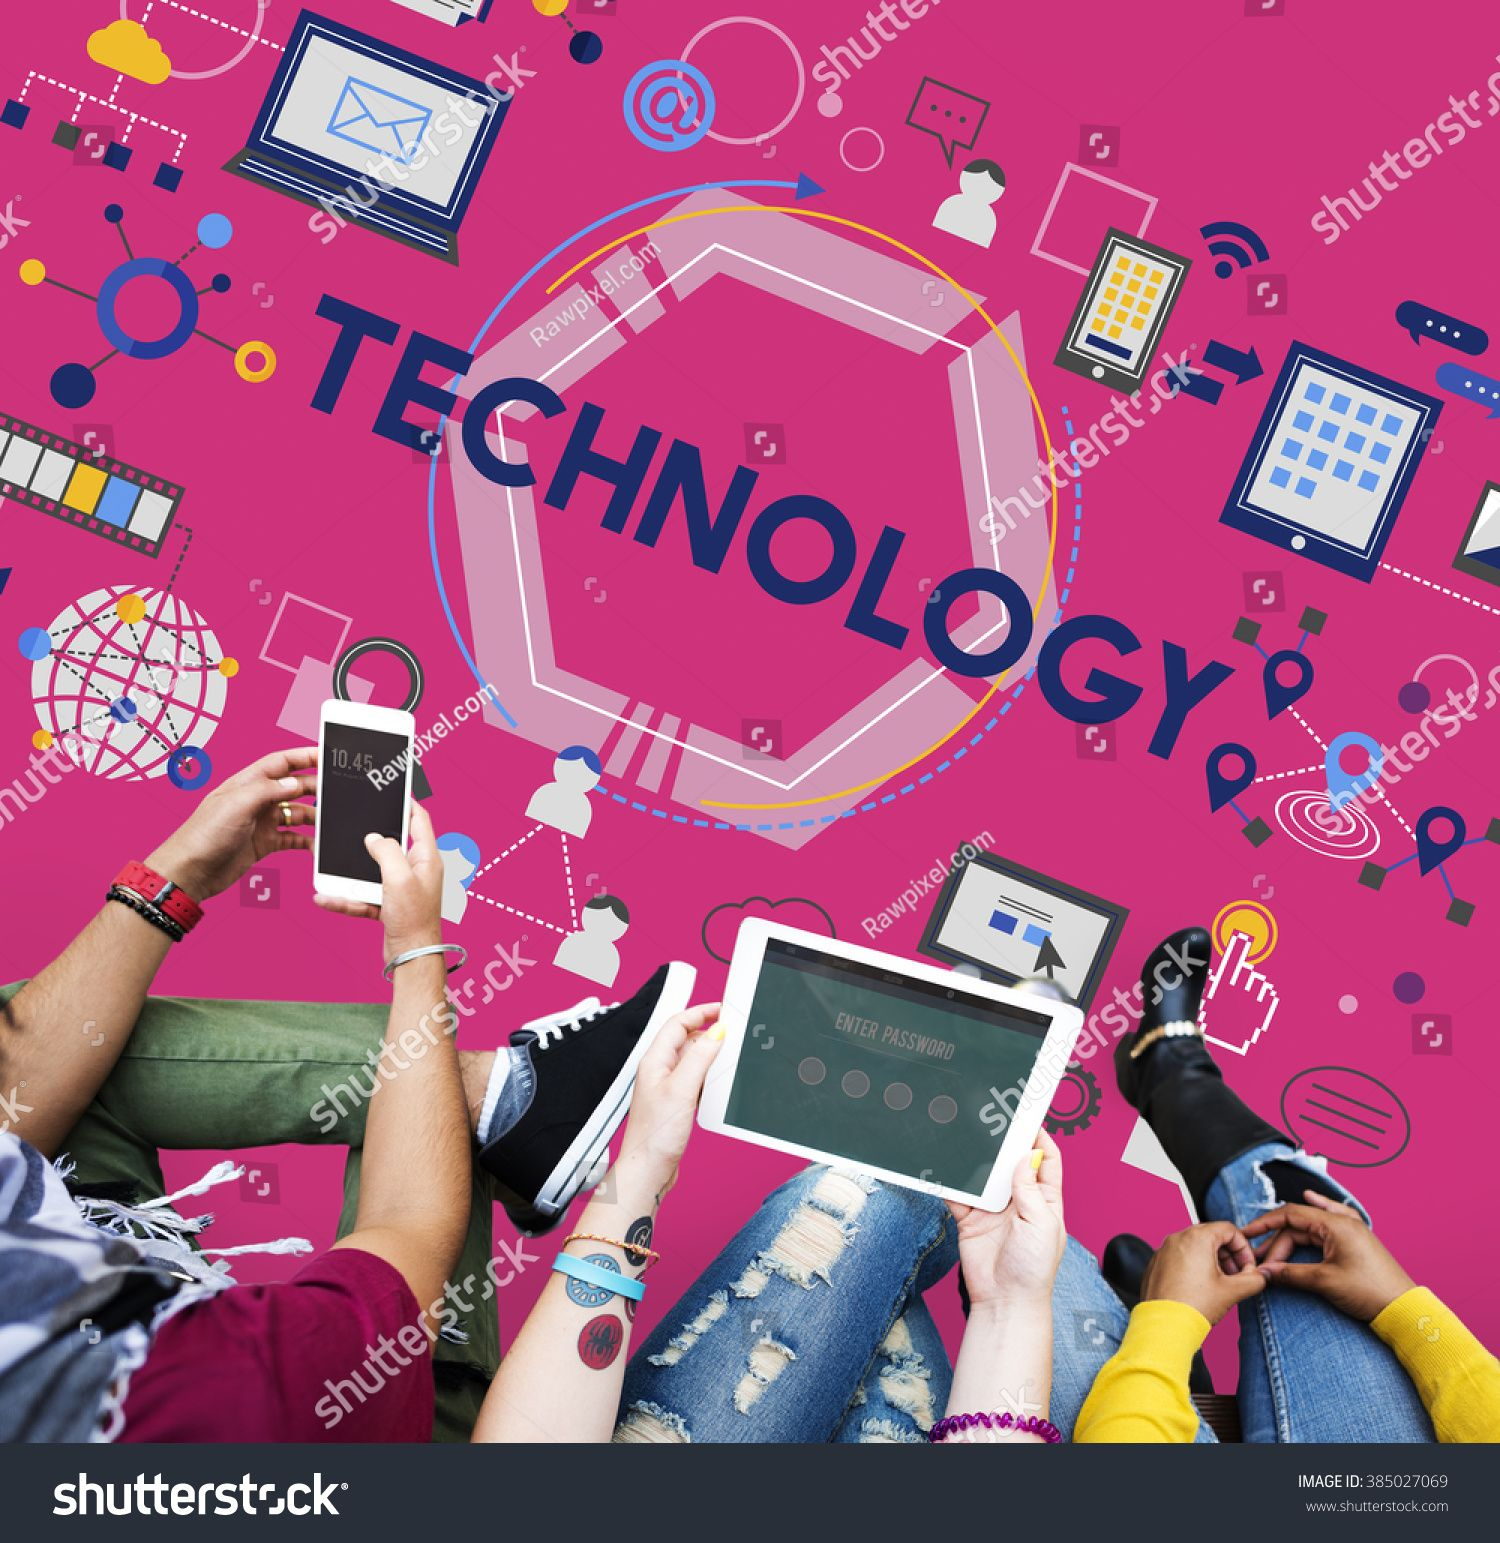 Technology Future Digital Media Innovation Concept Ad Spon Digital Future Technol Future Technology Concept Photography Websites Inspiration School Lines